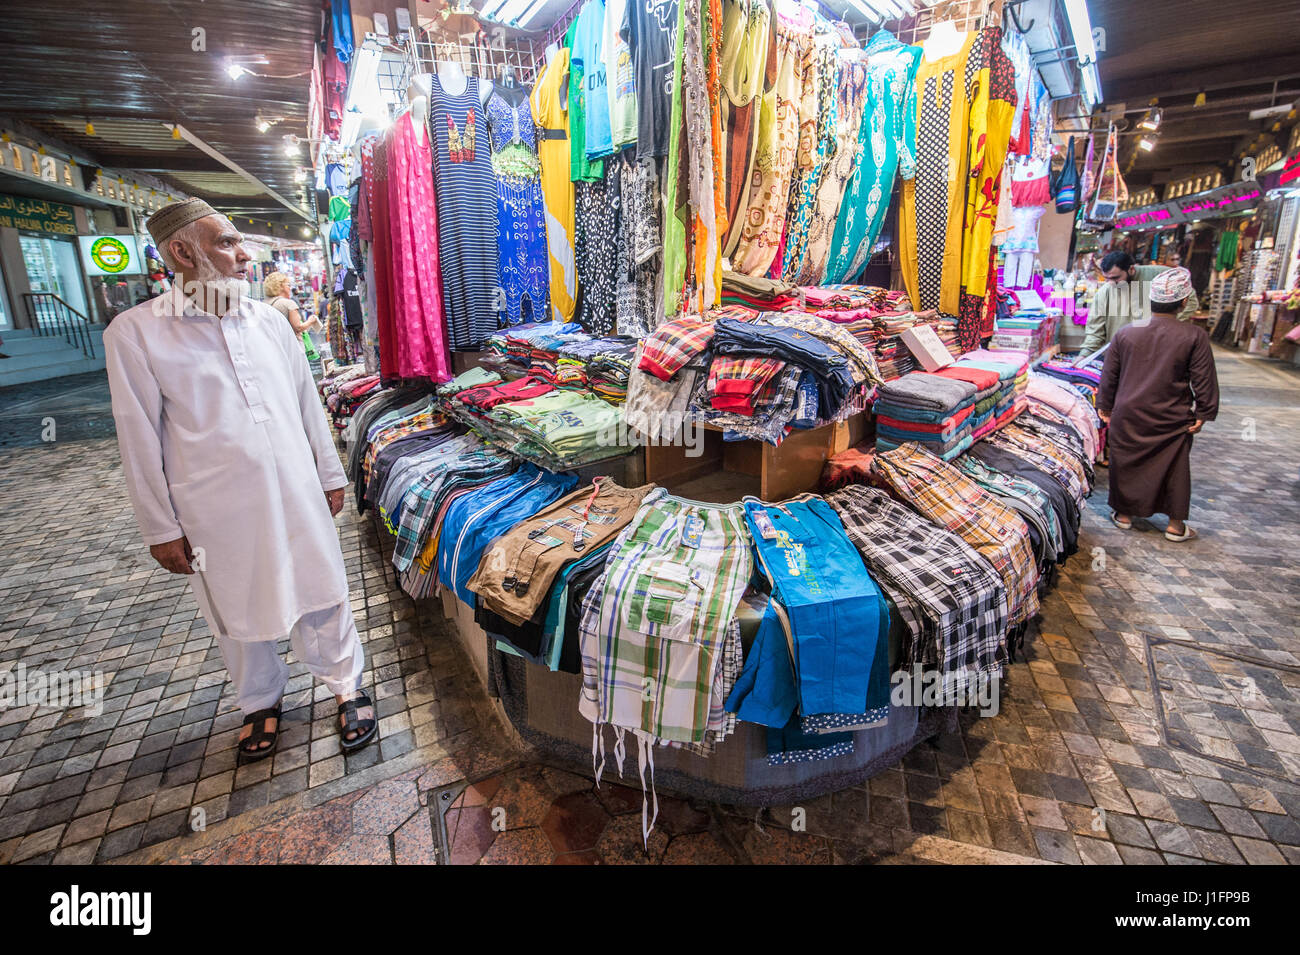 Muscat, Oman - Souq Muttrah Man looks at clothing for sale in market